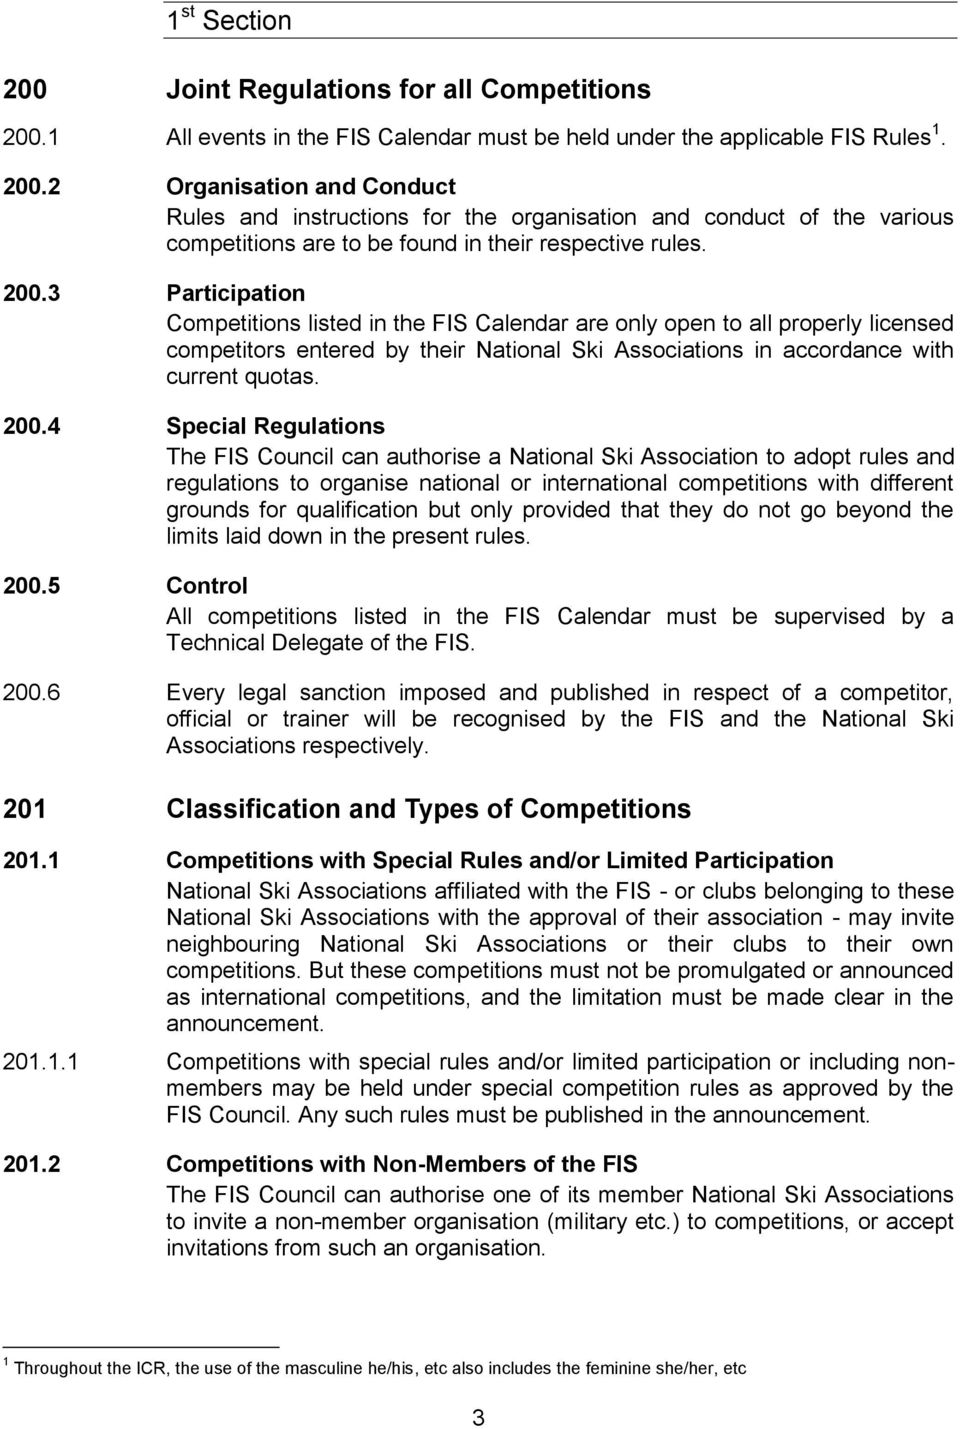 4 Special Regulations The FIS Council can authorise a National Ski Association to adopt rules and regulations to organise national or international competitions with different grounds for